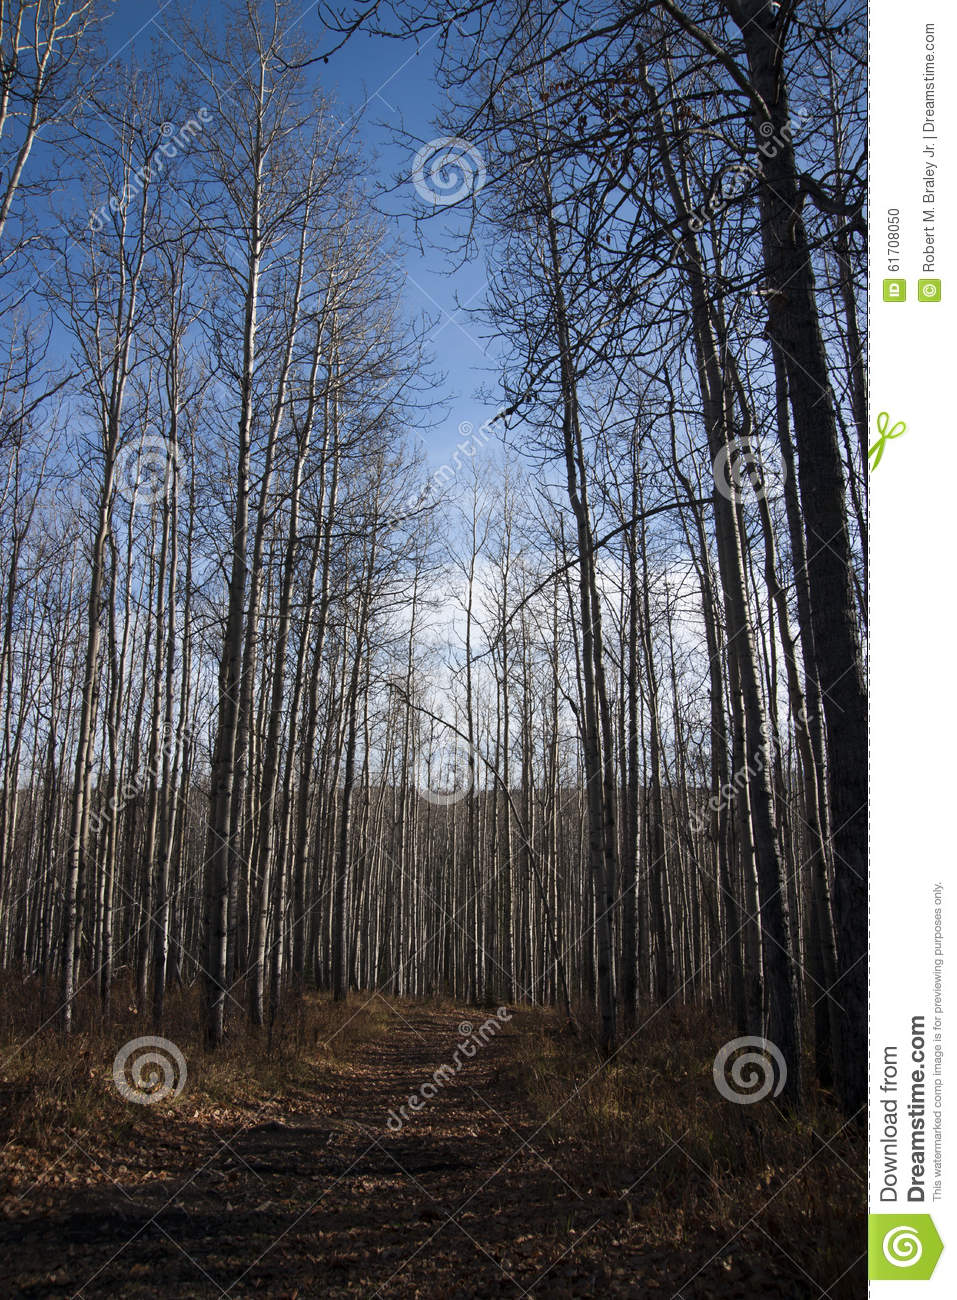 Download Alaska Highway Canada Remote Trail Stock Photo - Image of ground, columbia: 61708050